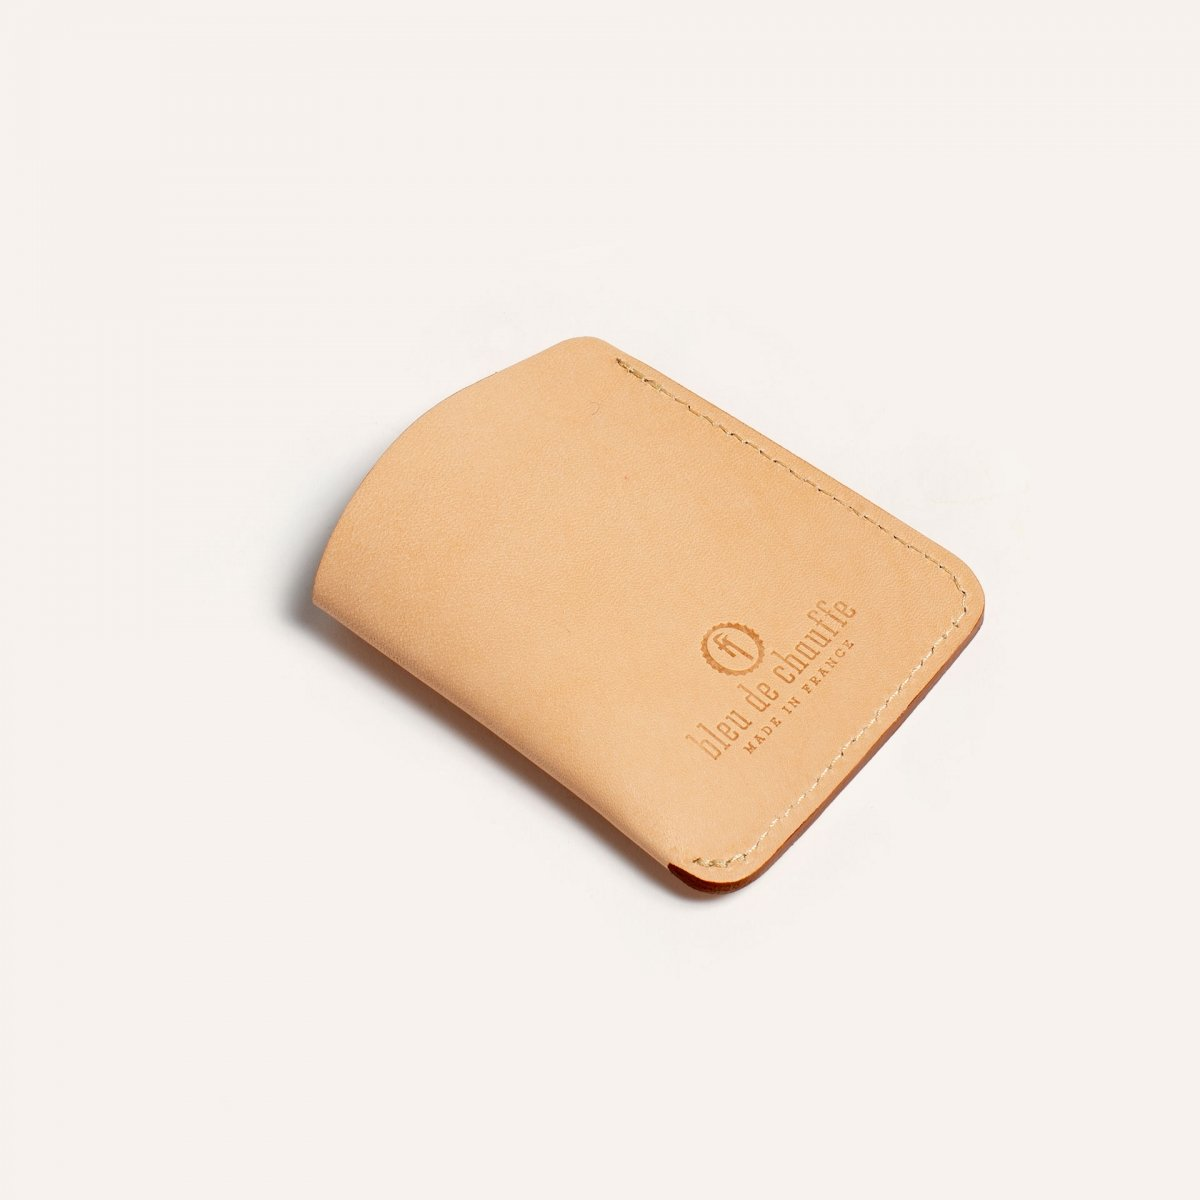 Intro business card holder - Natural (image n°3)